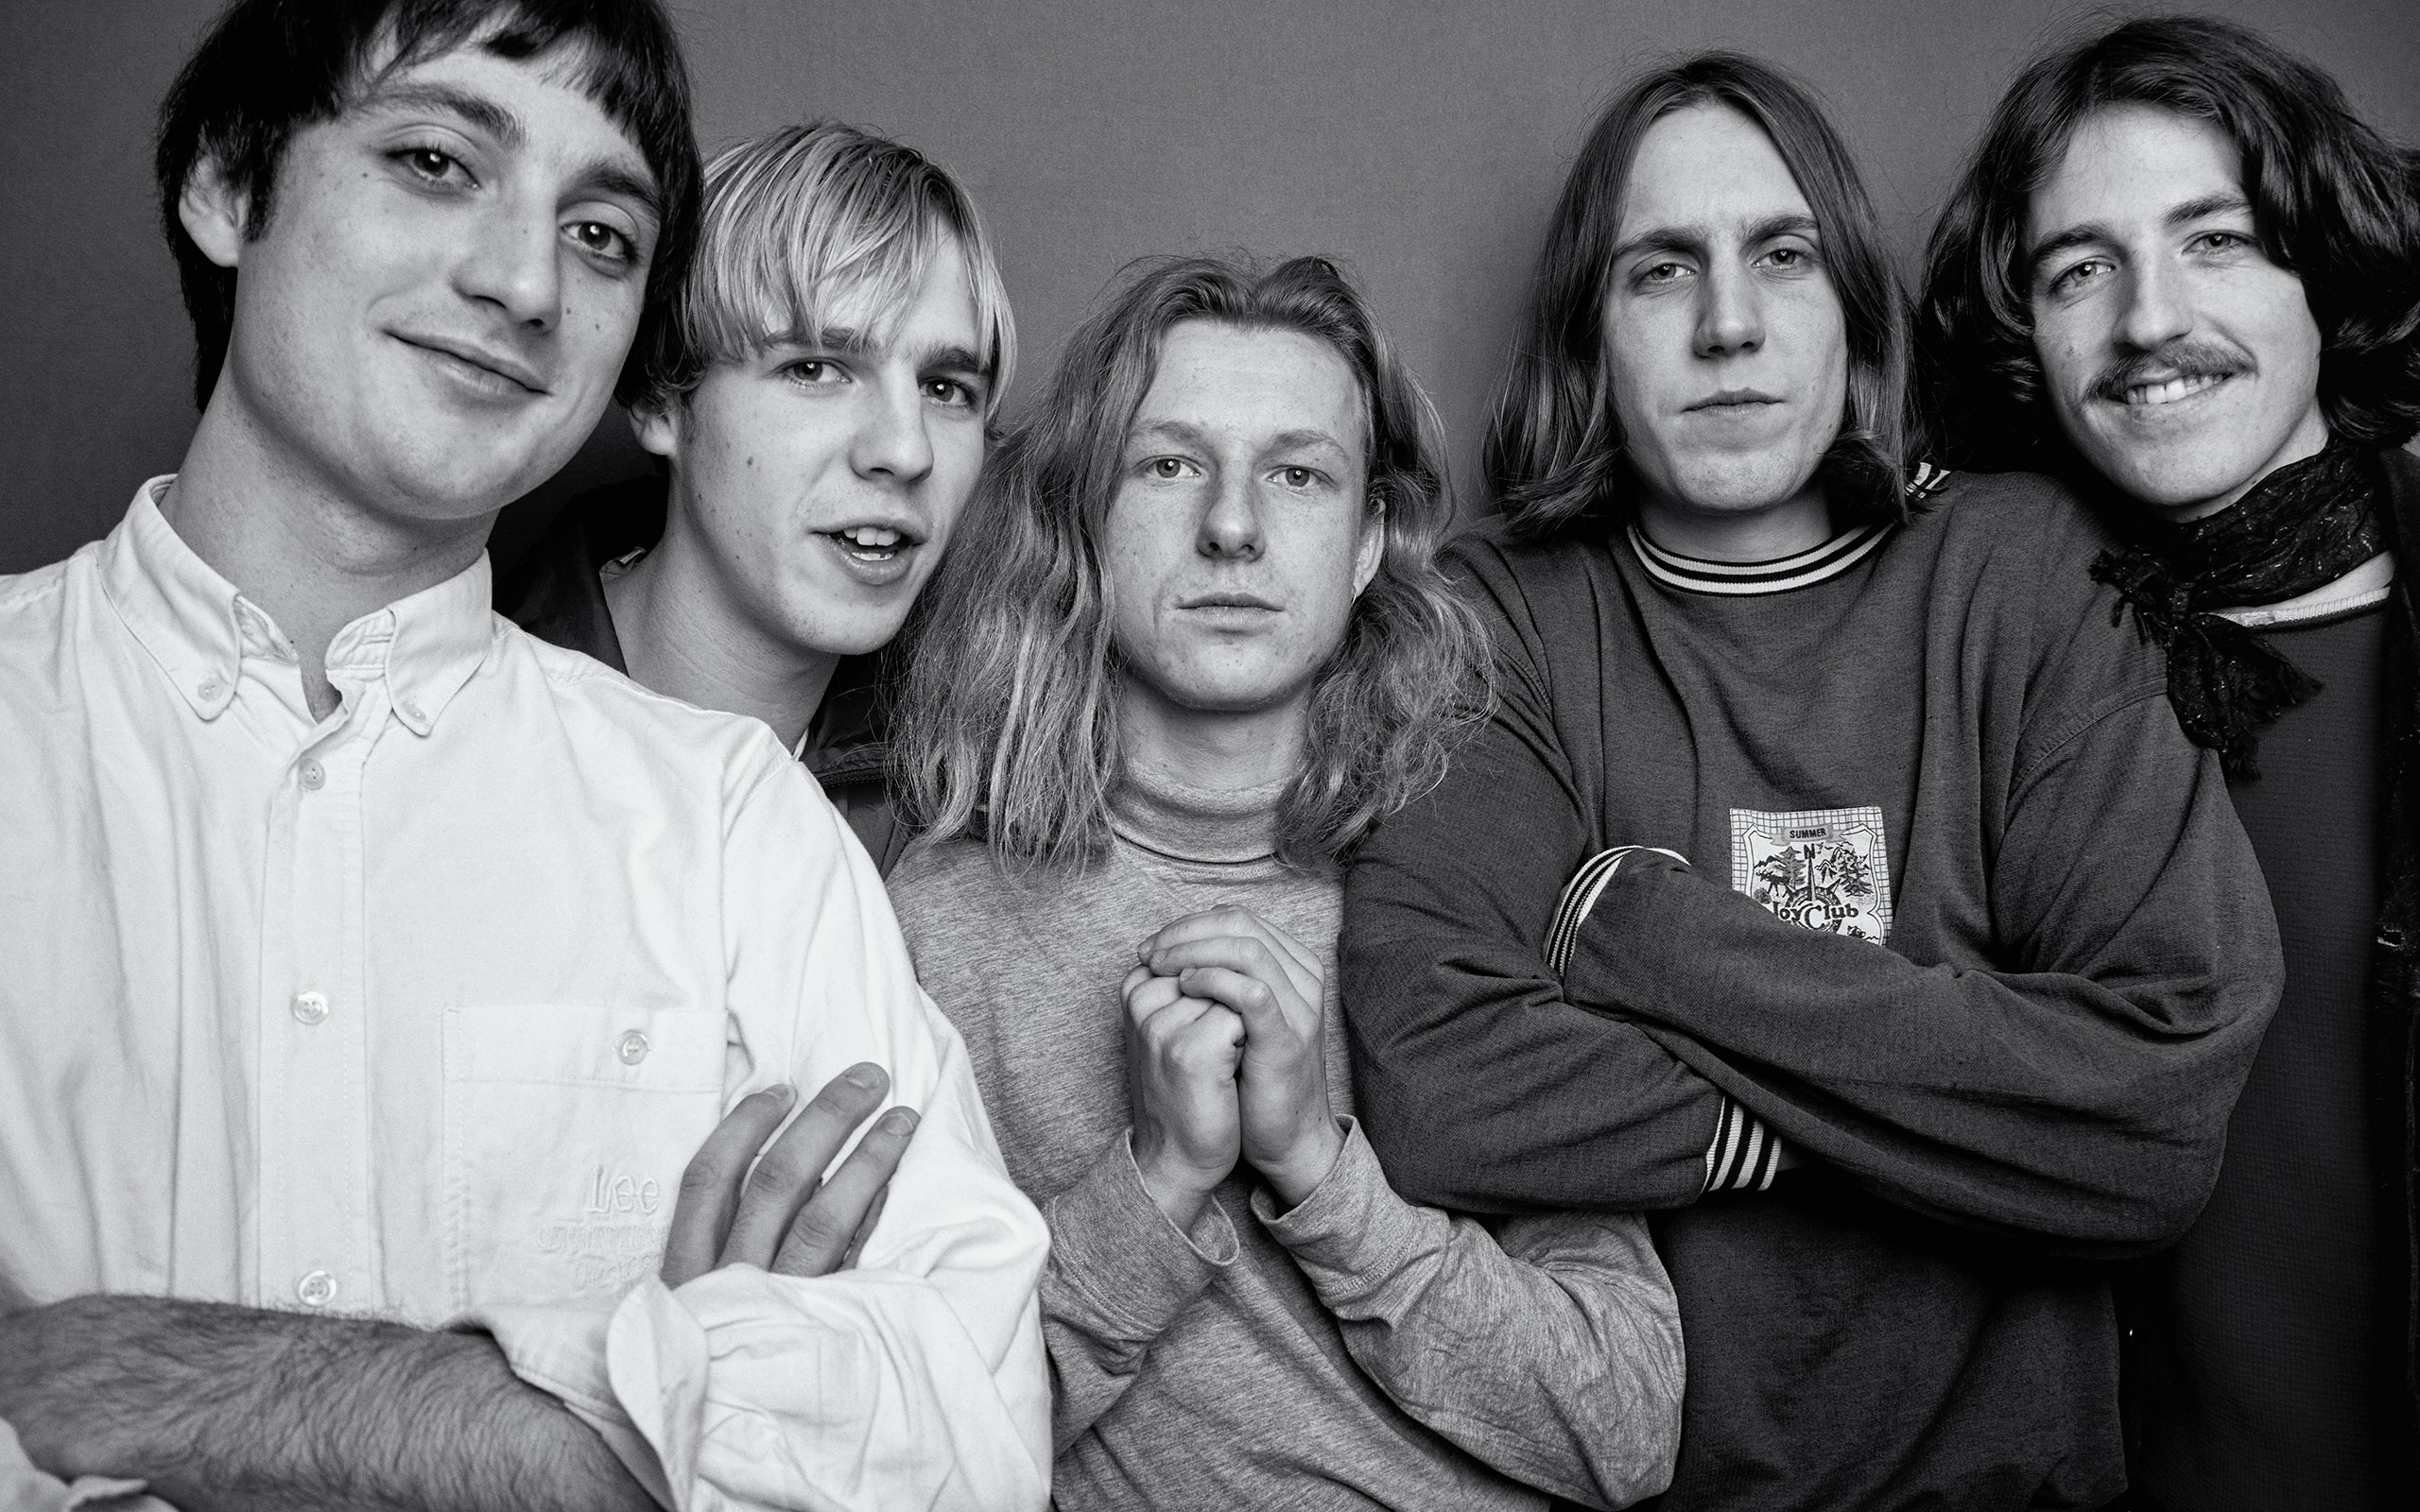 Interview with Parcels